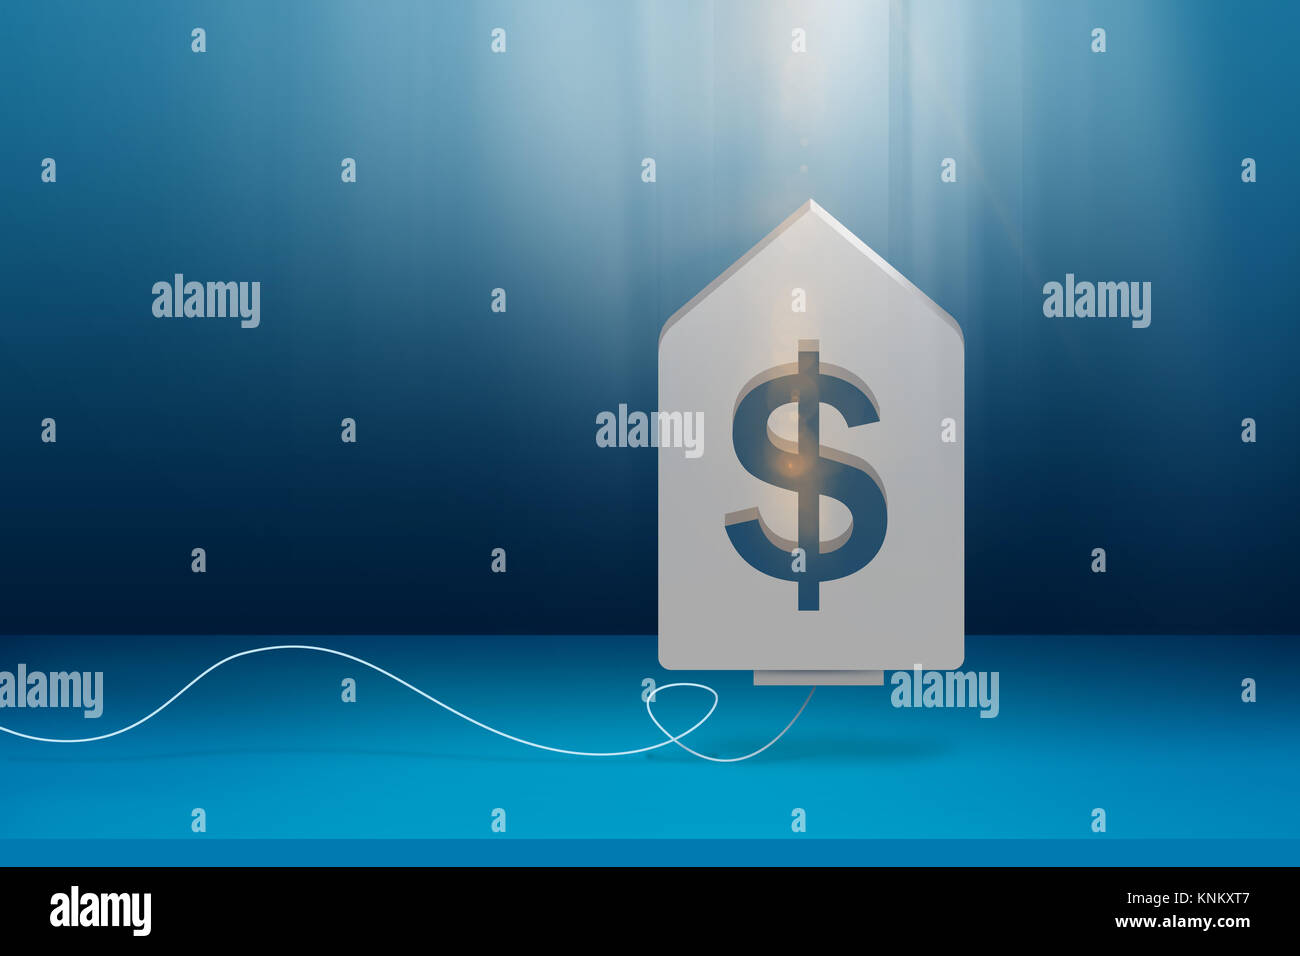 Bank Wire Stock Photos Images Alamy Wiring Money Rbc 3d Directional Dollar Sign Engine On Blue Background With Ignite Crisis Concept